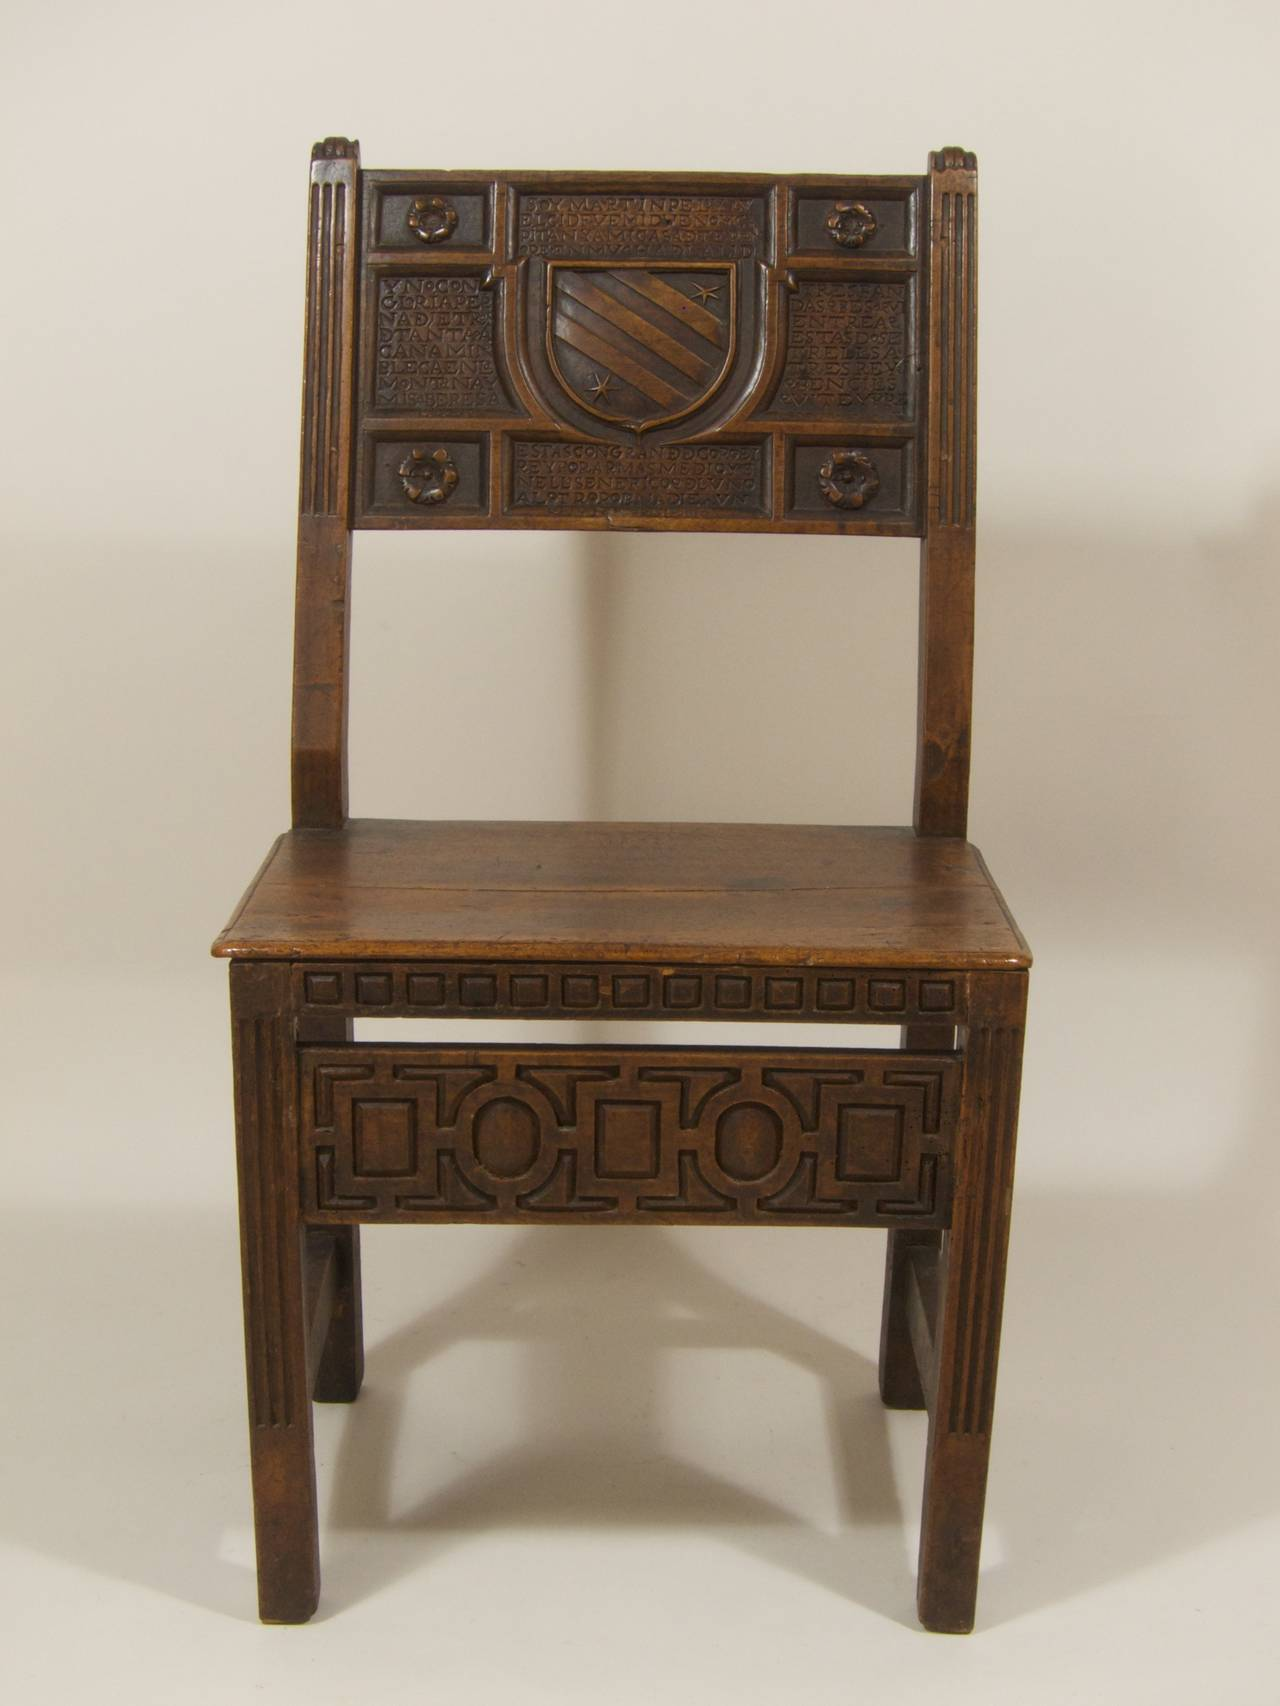 Spanish Renaissance Chair 16th Century For Sale at 1stdibs